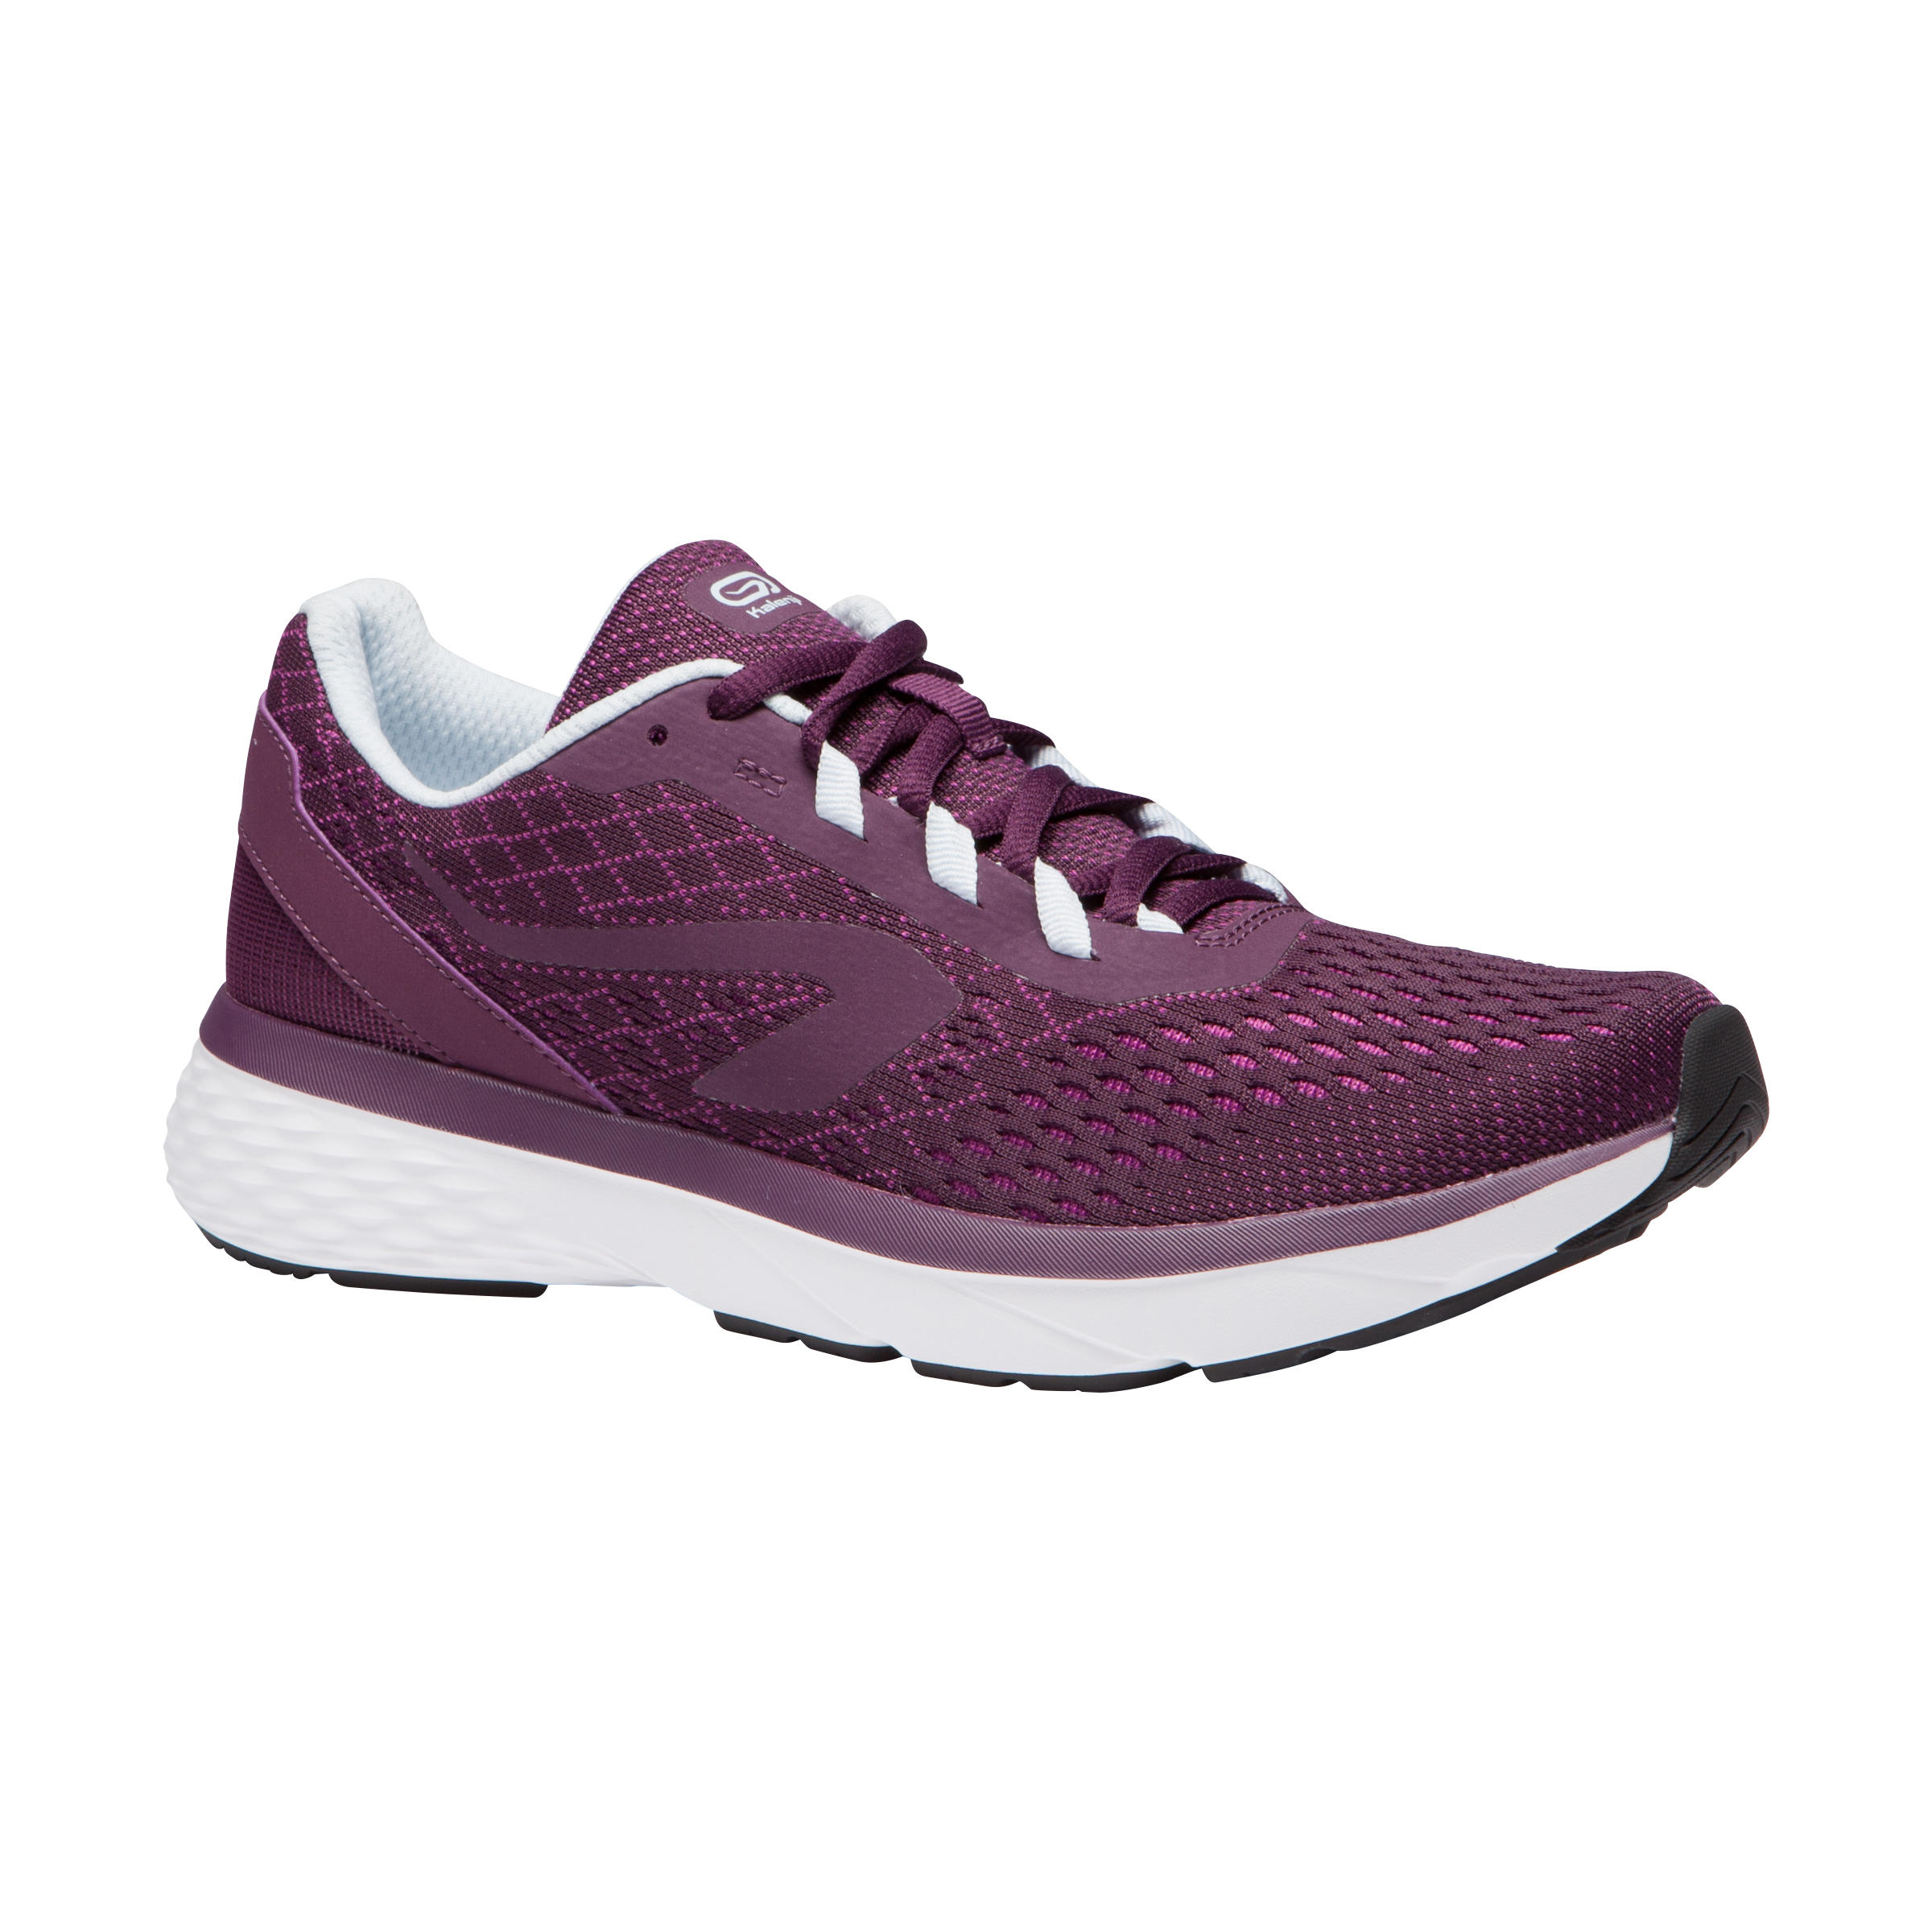 Running Shoes For Men And Women Online India  a2e2a99e8dc